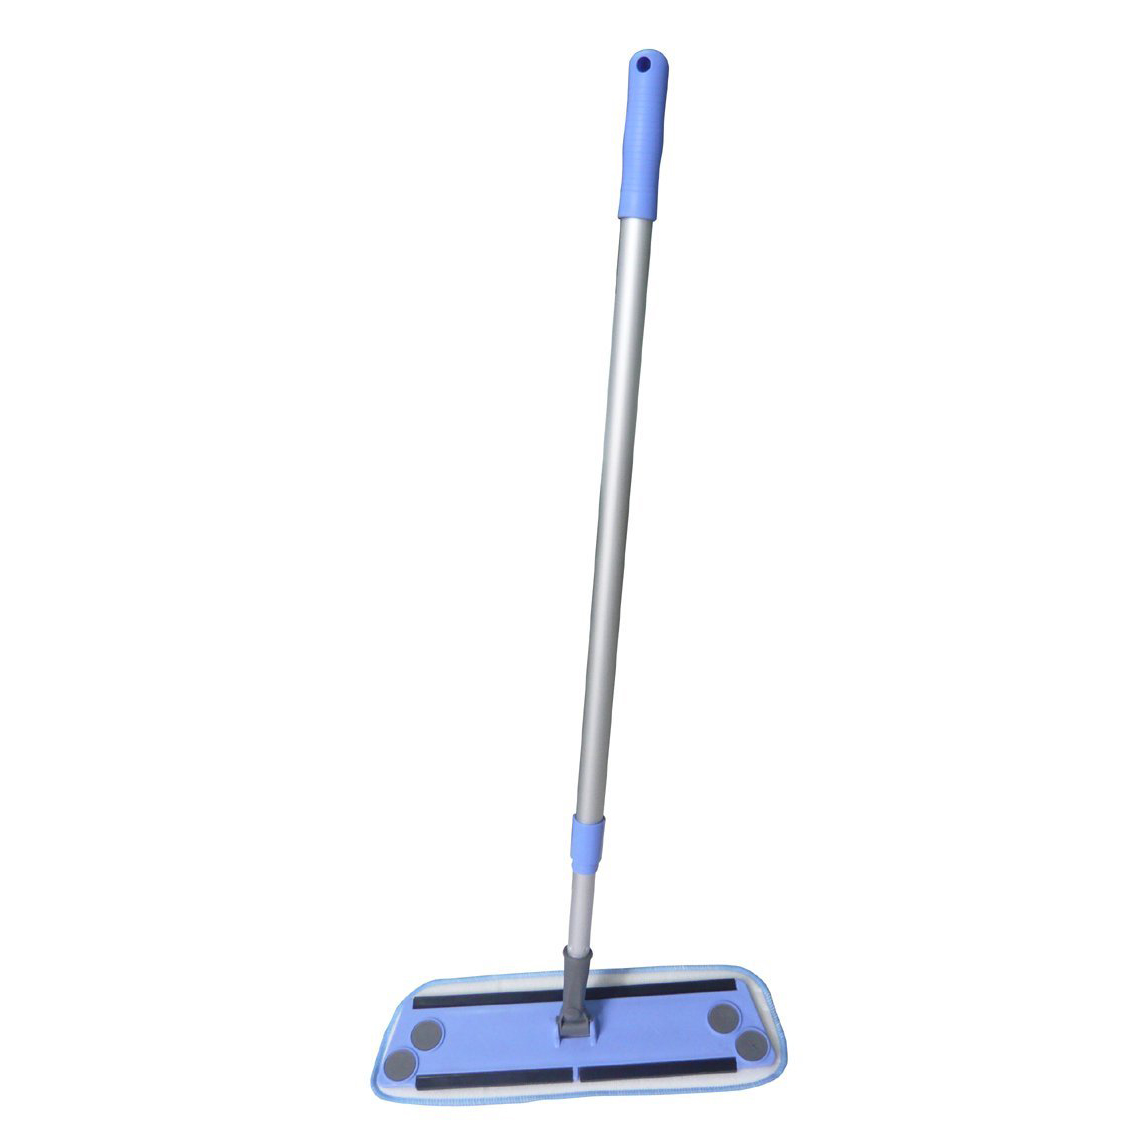 Zwipes Microfiber Cleaning Flat Mop with Pole, Use Dry or Wet by Zwipes